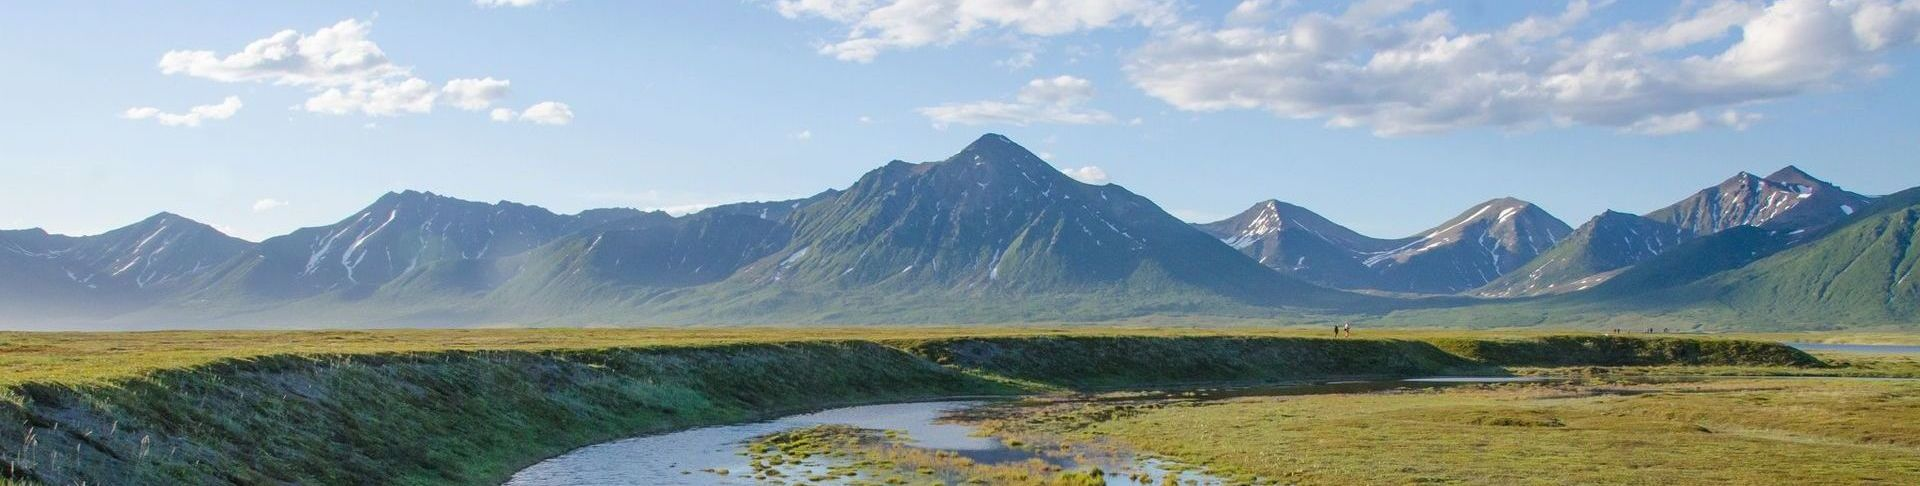 BioSuperfood is hydroponically grown in volcanic spring water on Siberia's remote Kamchatka Peninsula..